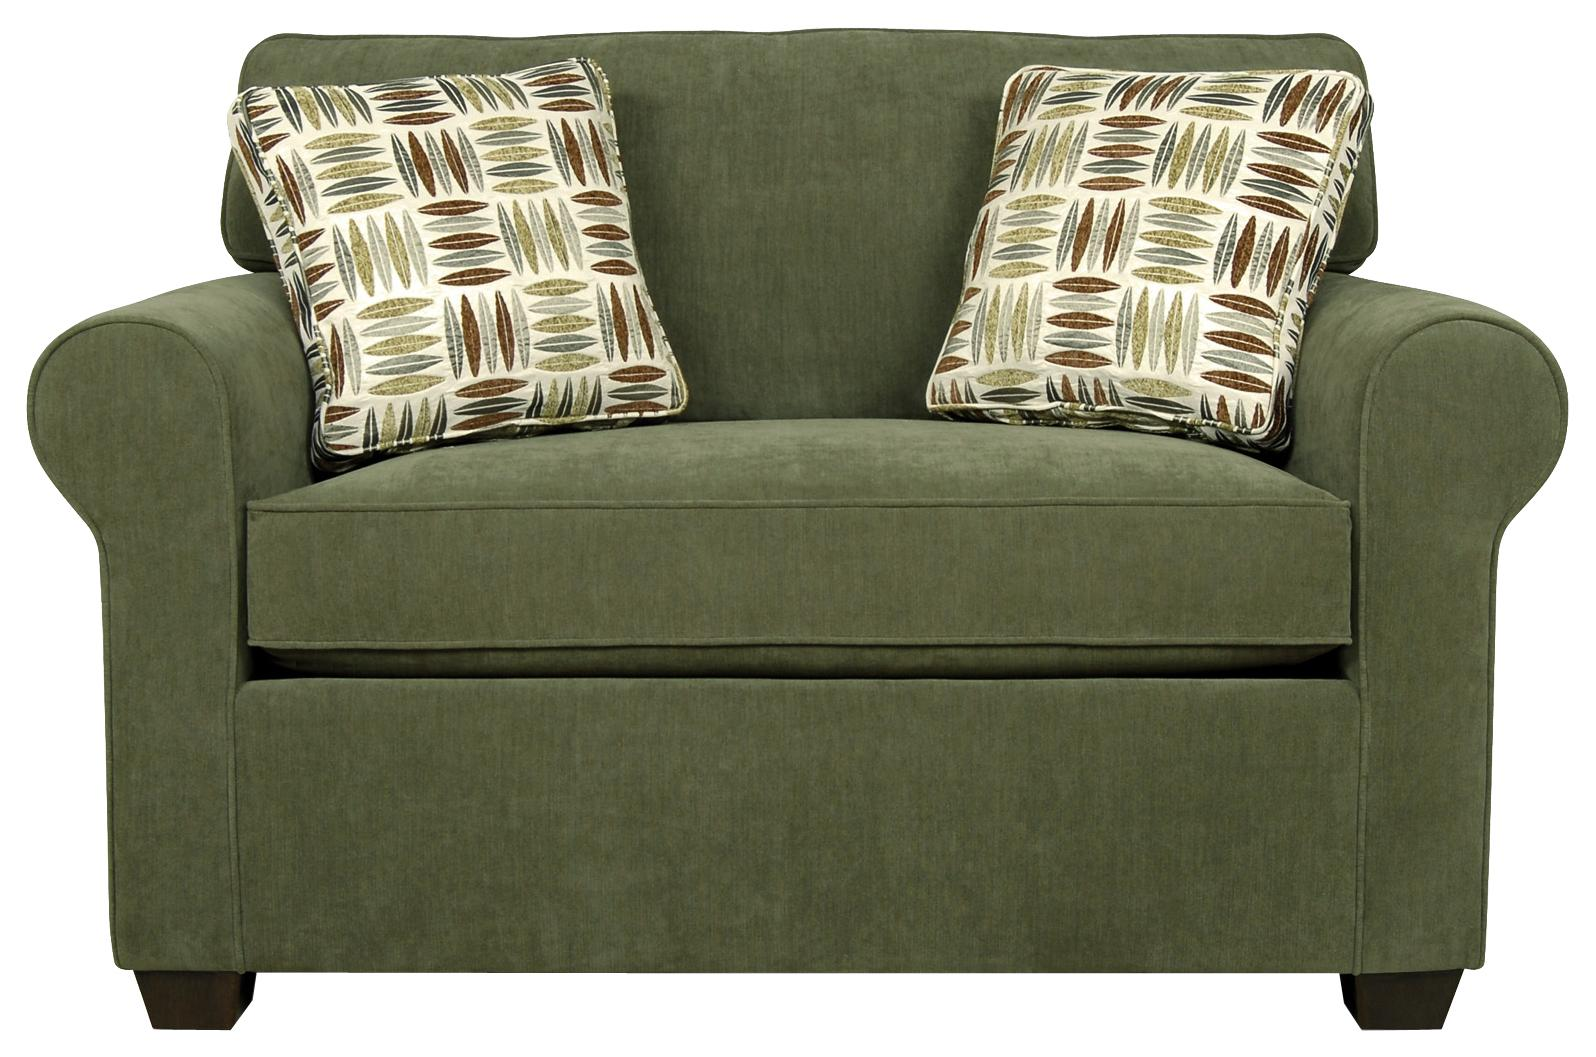 Twin Size Sleeper Sofas Twin Size Sleeper Sofas That Are Perfect For Relaxing And Thesofa